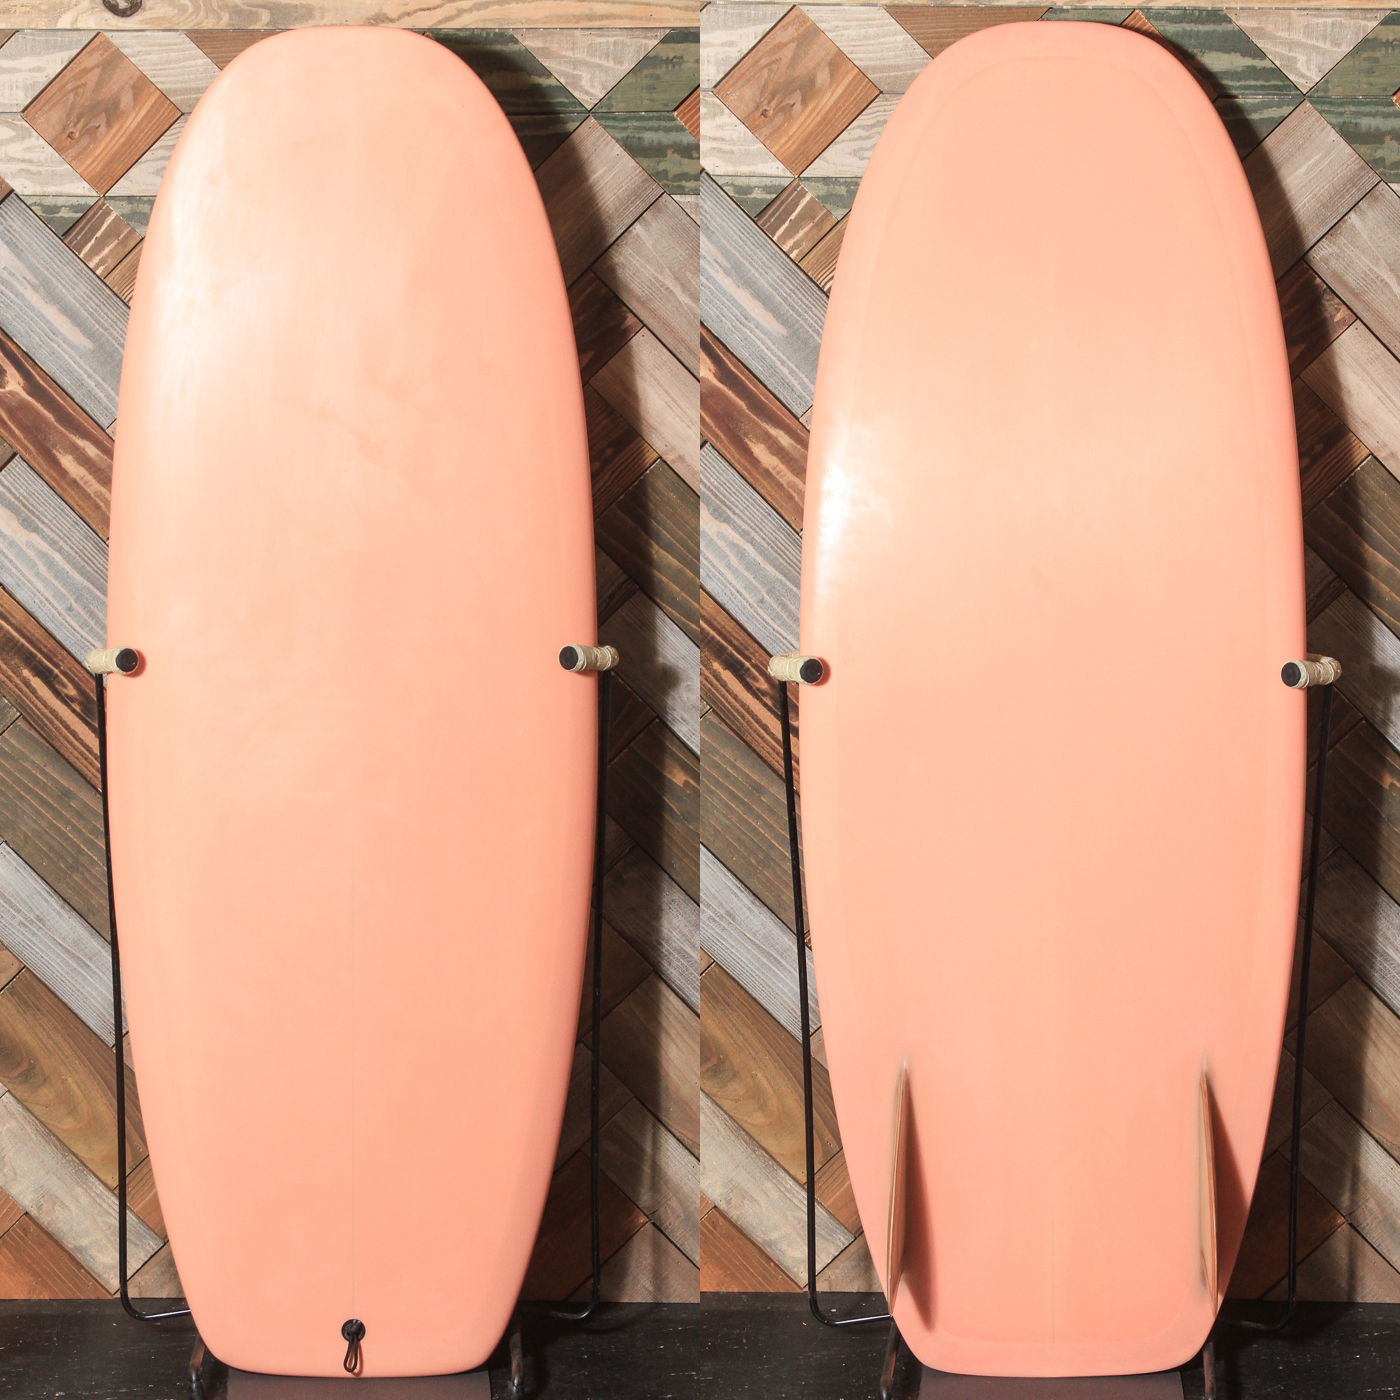 "【中古優良品】 TYLER WARREN / BAR OF SOAP 4'10 x 21-1/4"" x 2-3/4""   【商品グレード】★★★☆☆ No.c1534"